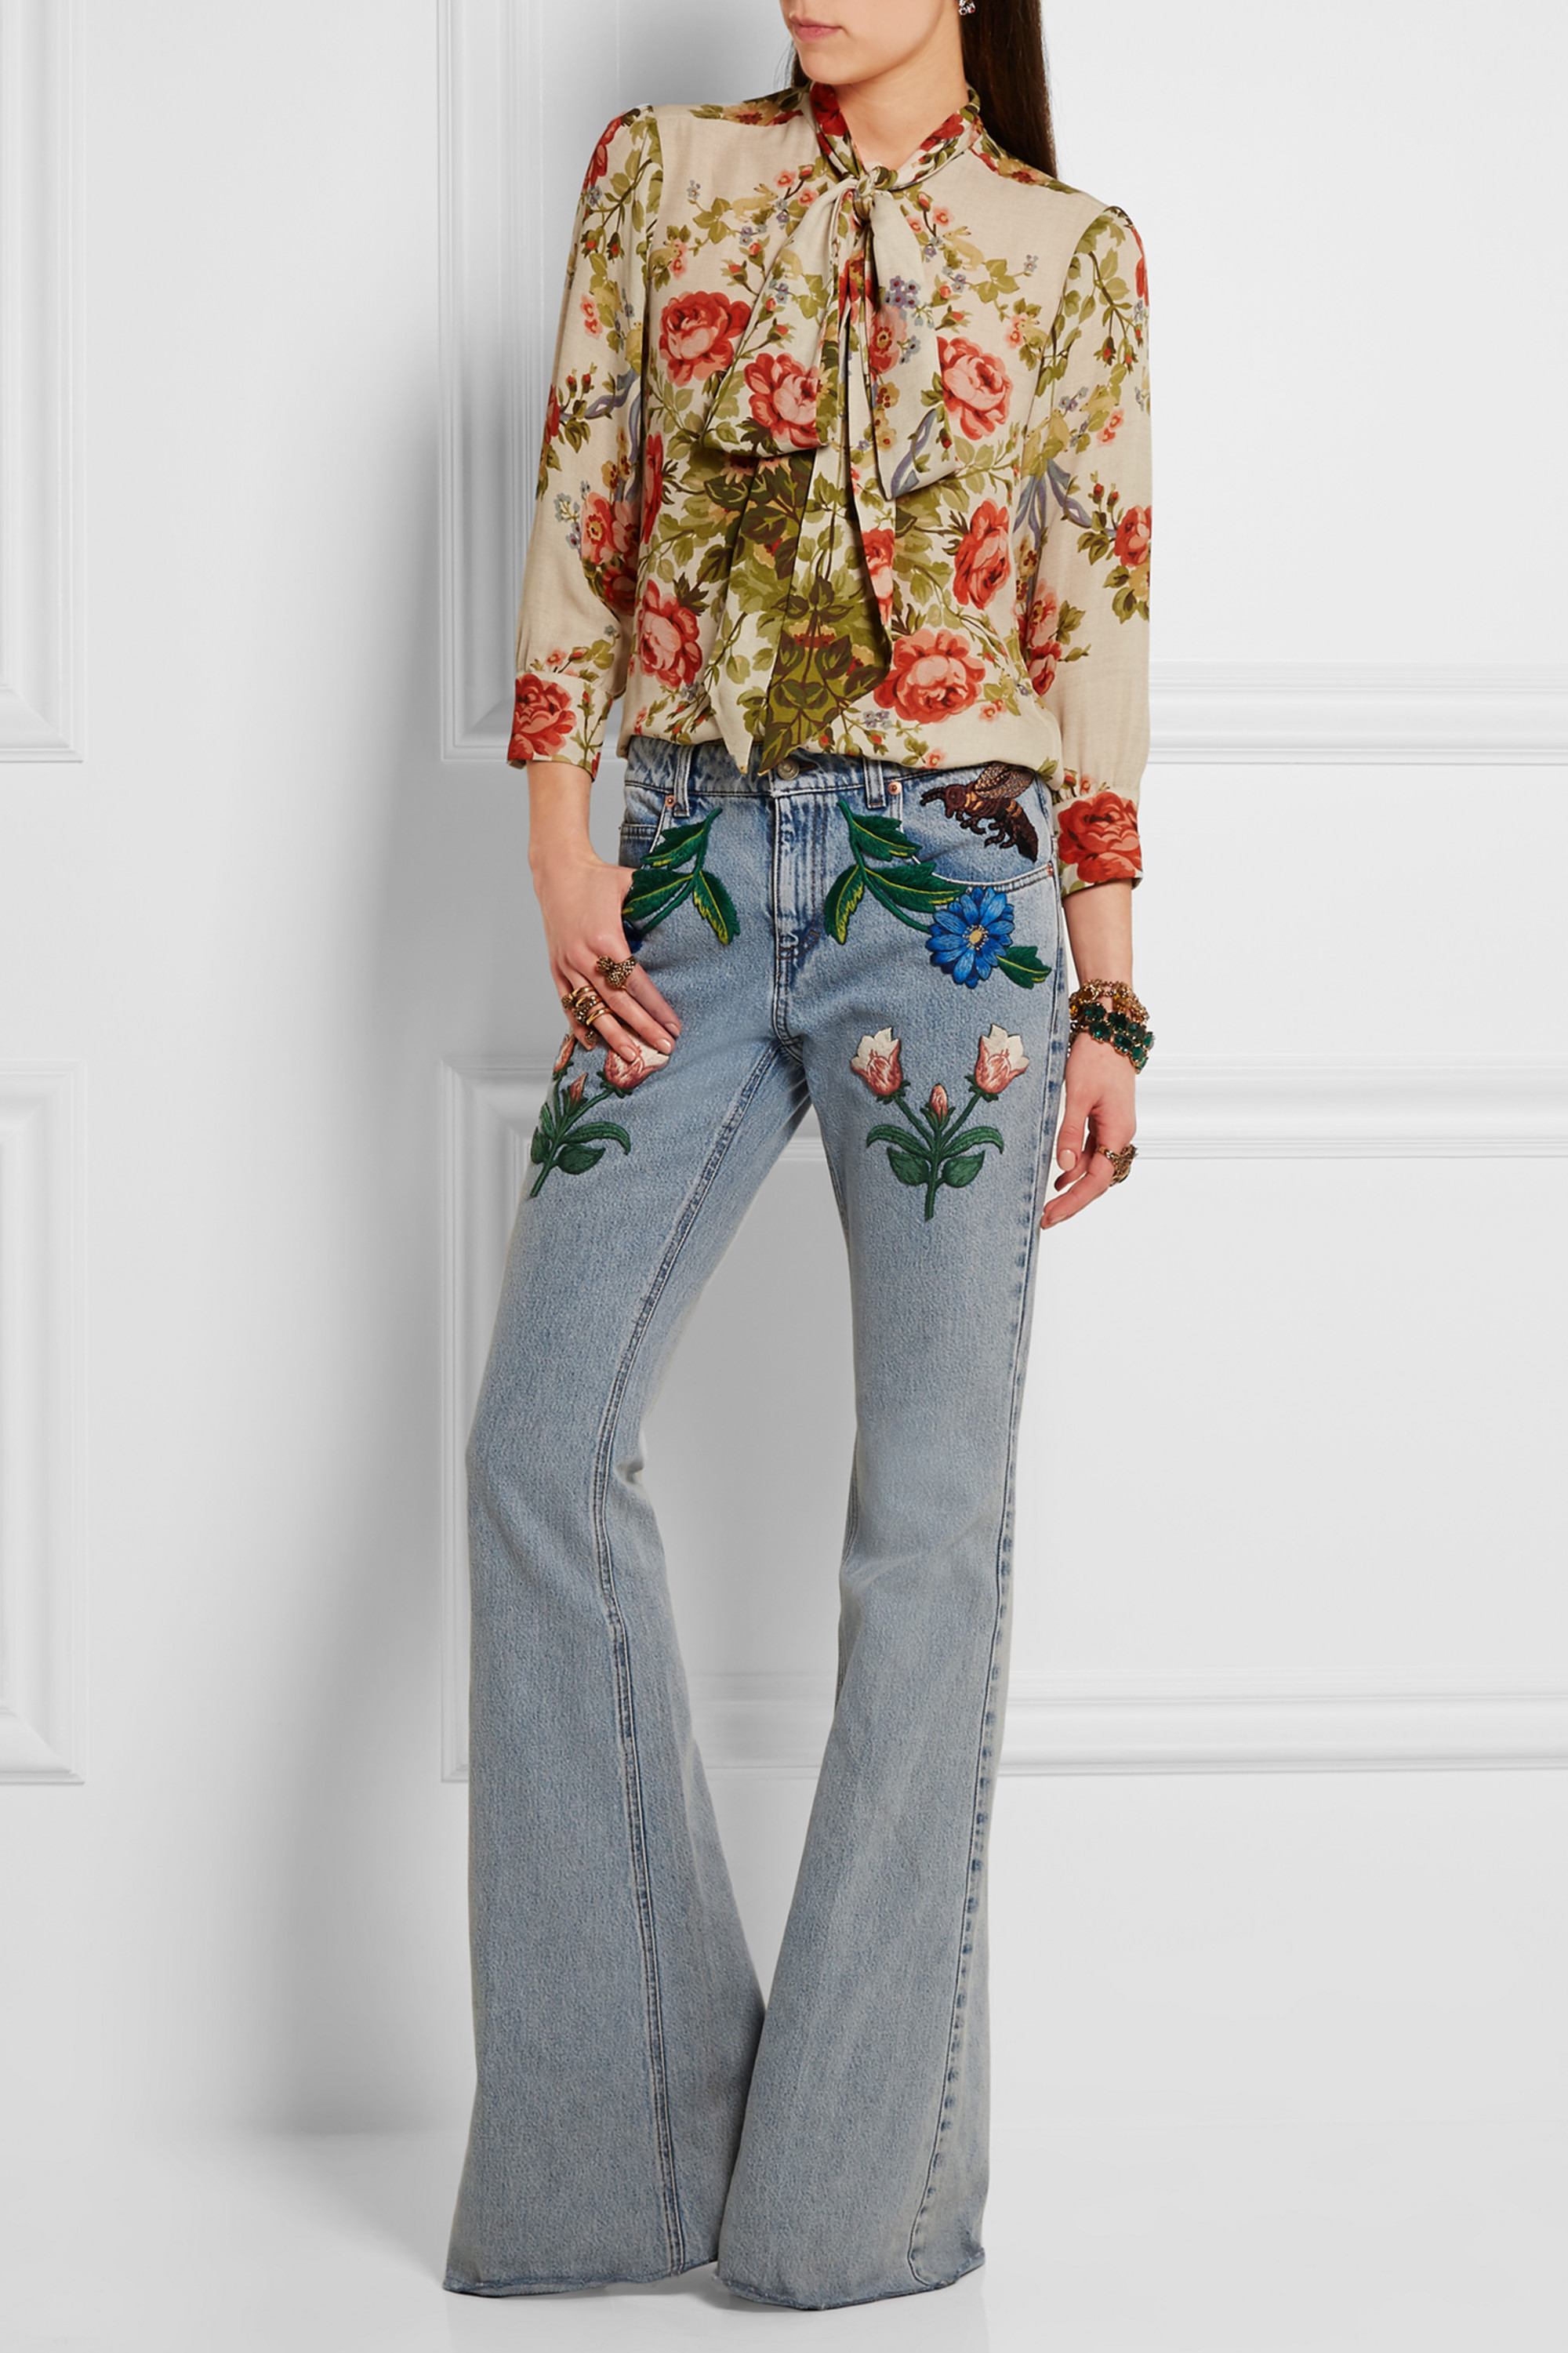 Gucci for NET-A-PORTER Appliquéd mid-rise flared jeans